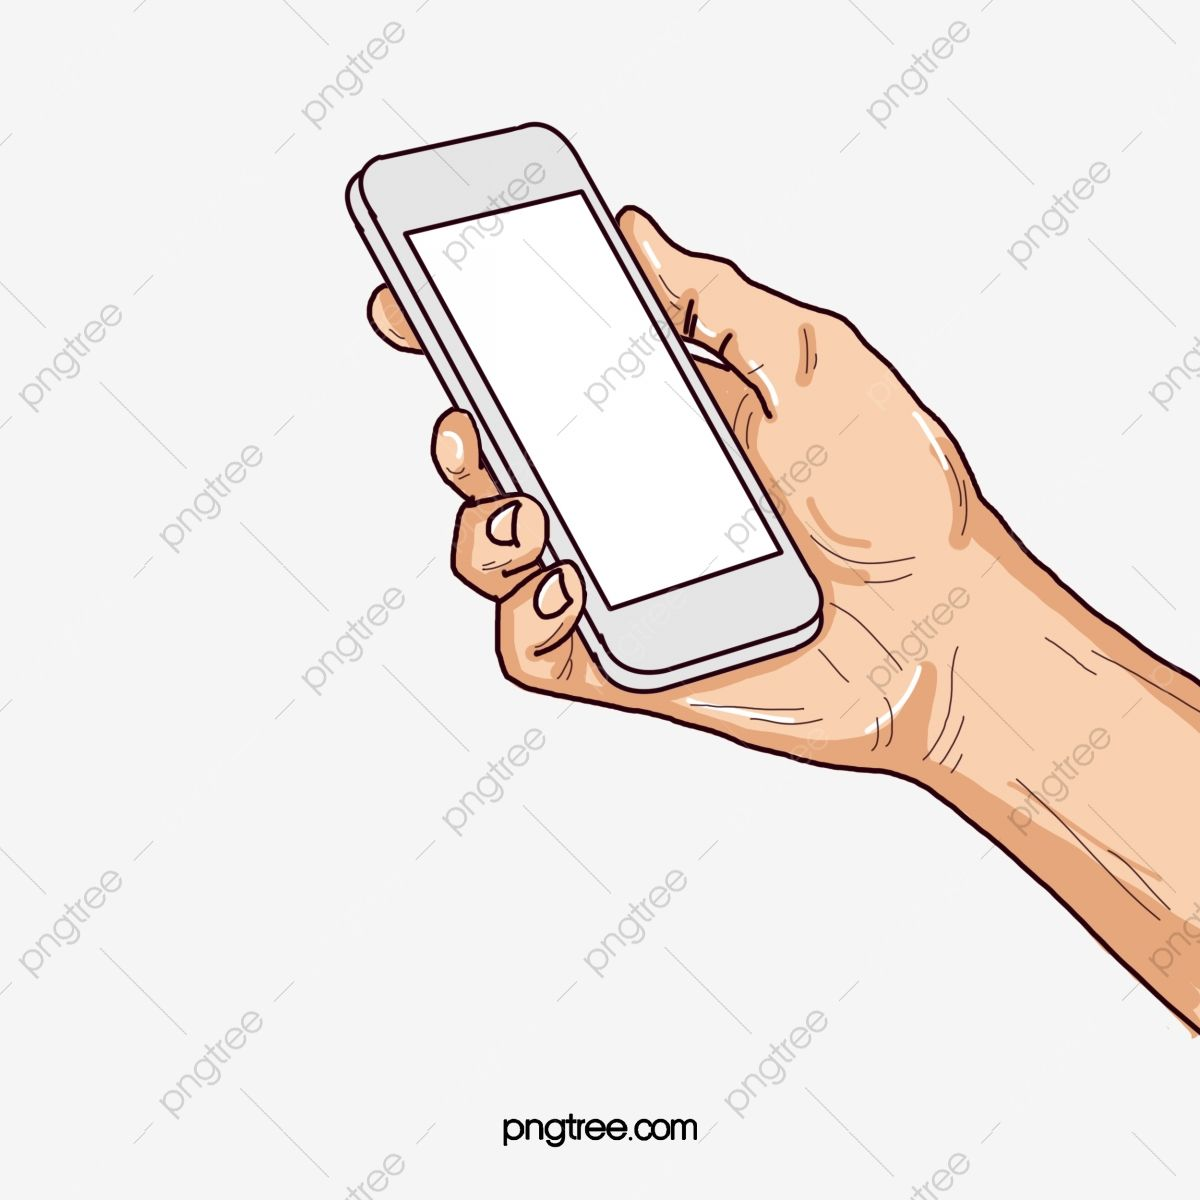 The Hand Holding A Cell Phone Cell Clipart Phone Clipart Web Page Png Transparent Clipart Image And Psd File For Free Download Clip Art Hand Holding Phone Clipart Images